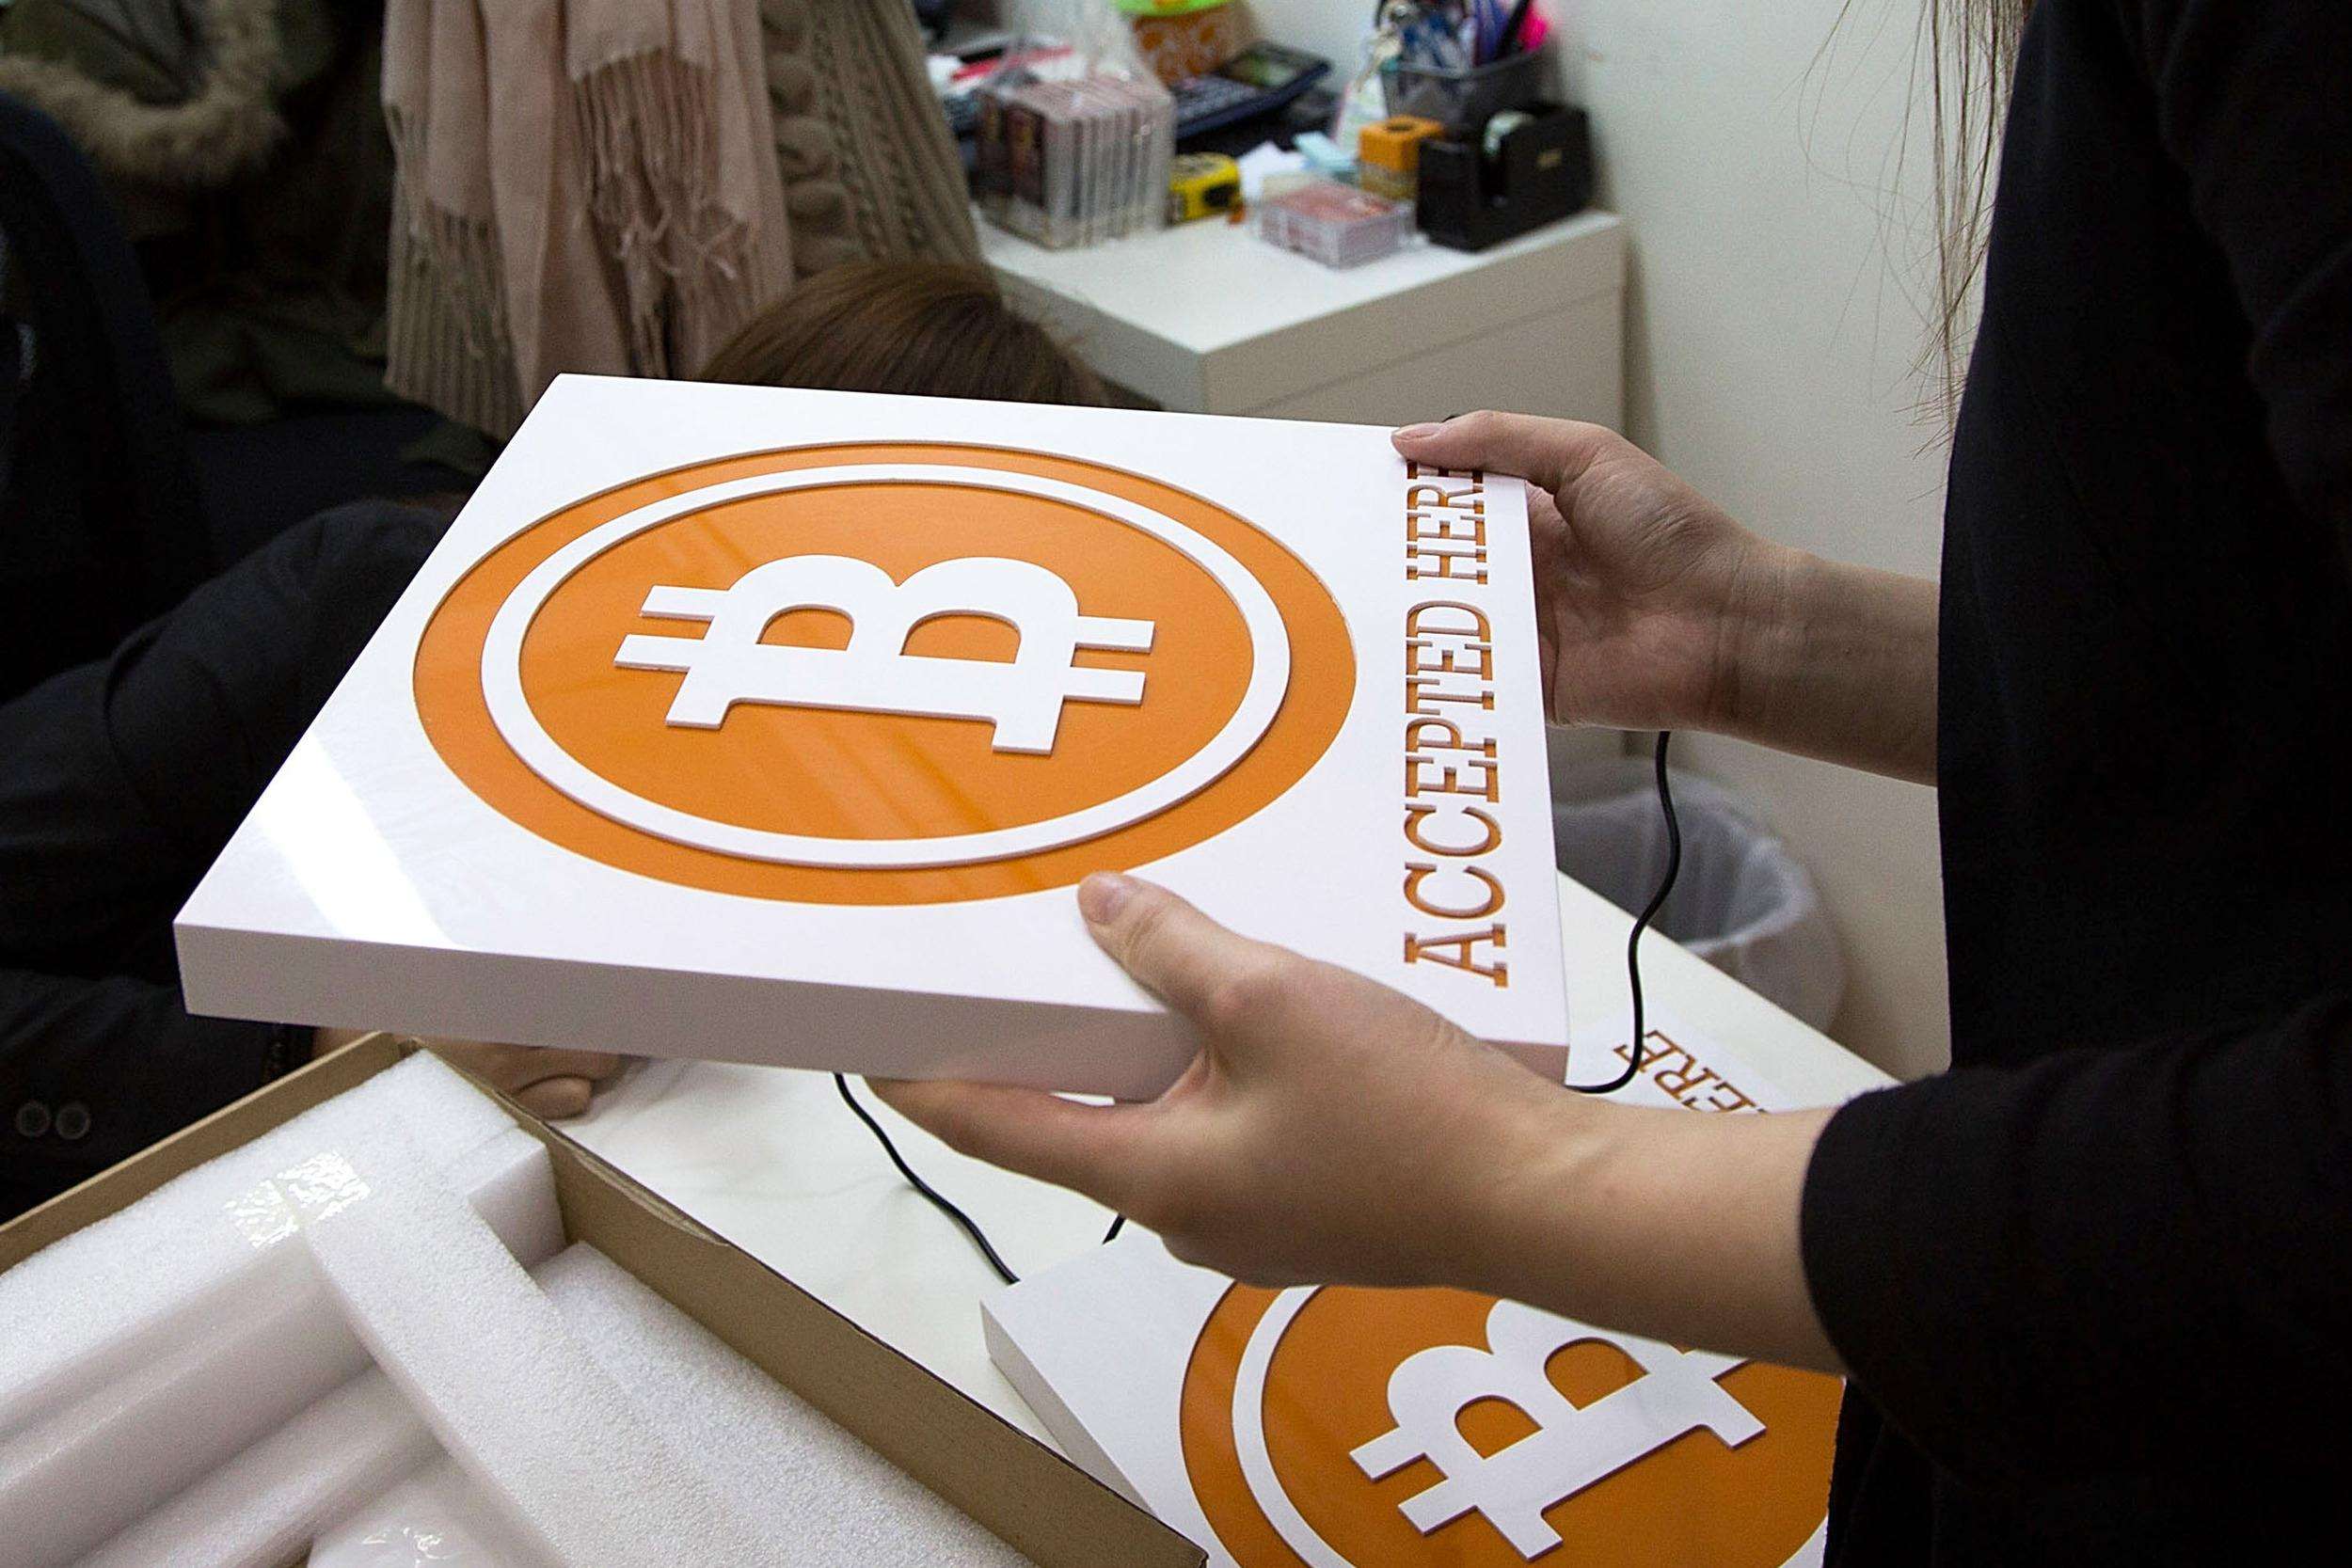 Another bitcoin exchange is in dire straits after hackers stole bitcoins valued at over $600,000.